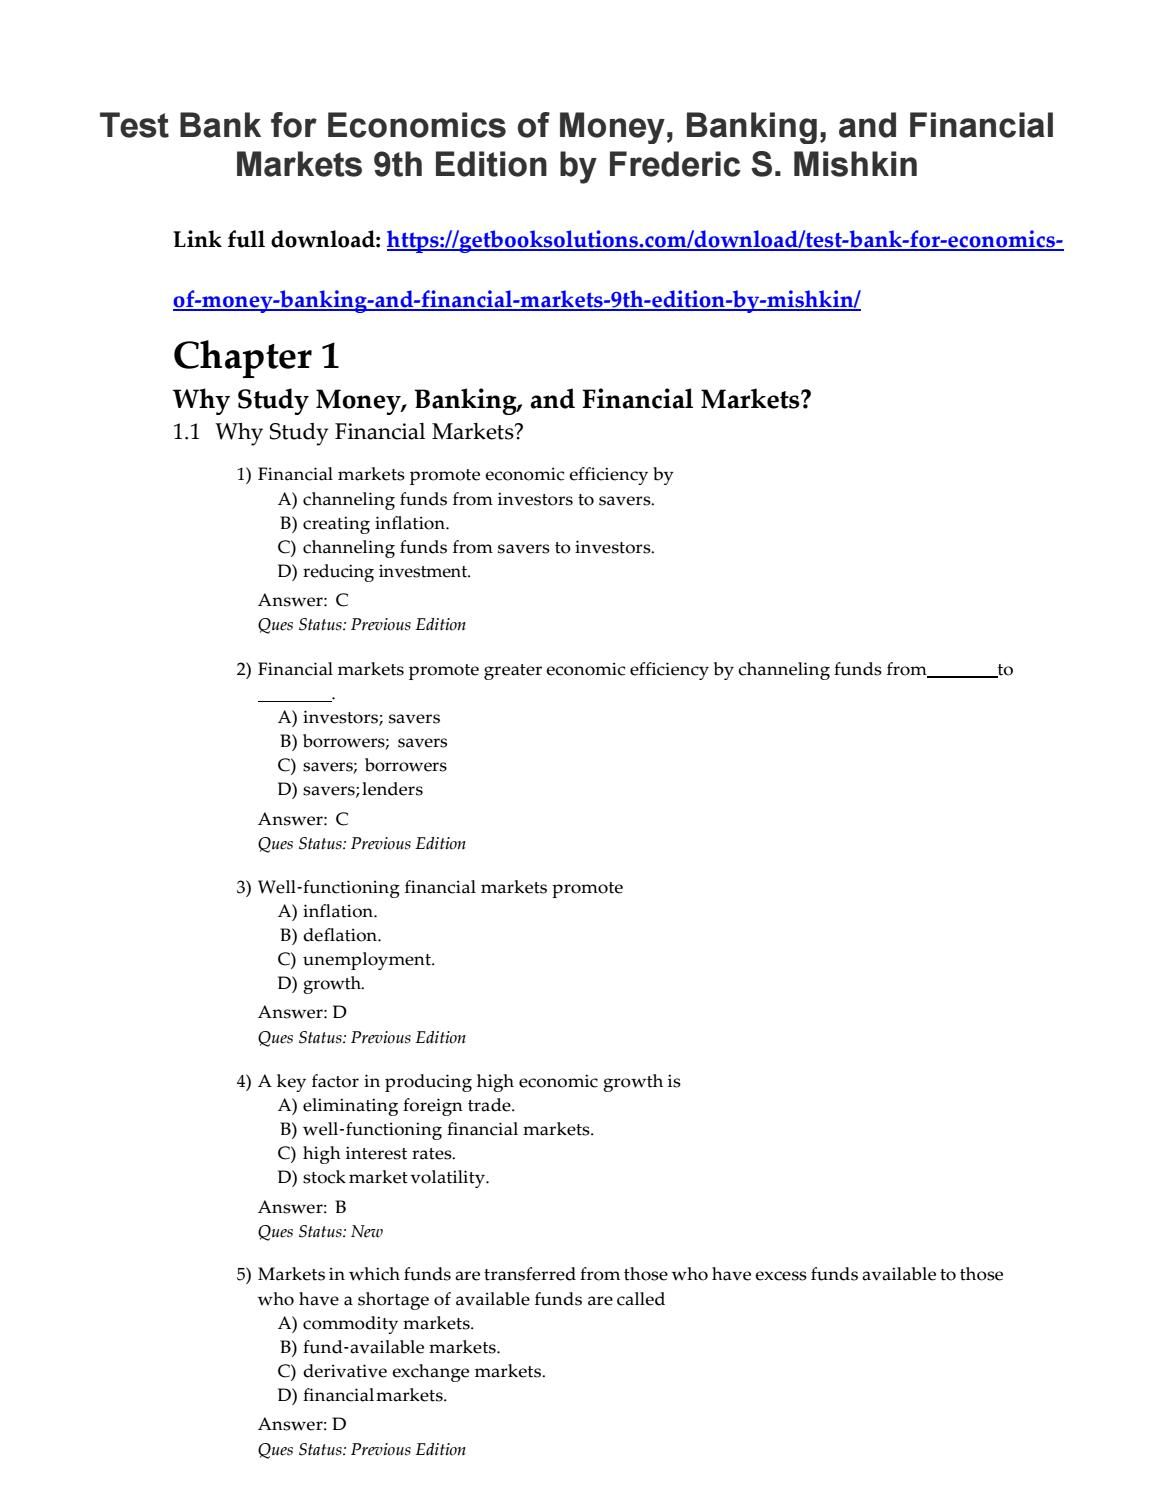 Test bank the economics of money banking financial markets 9th test bank the economics of money banking financial markets 9th edition mishkin fandeluxe Images